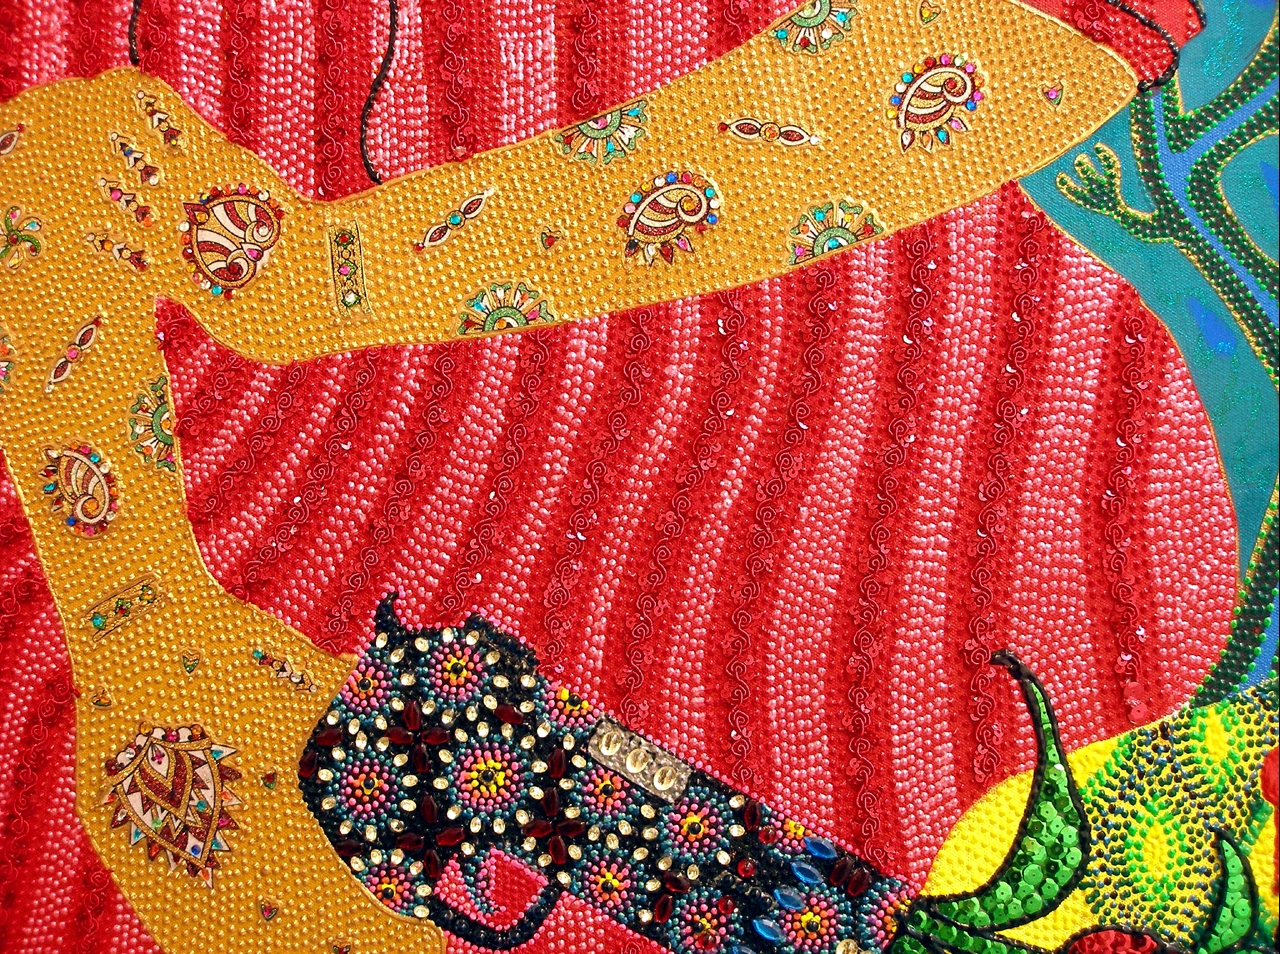 """The Intertwining, detail,2009 Oil, acrylic and jewels on canvas 48"""" x 72"""""""